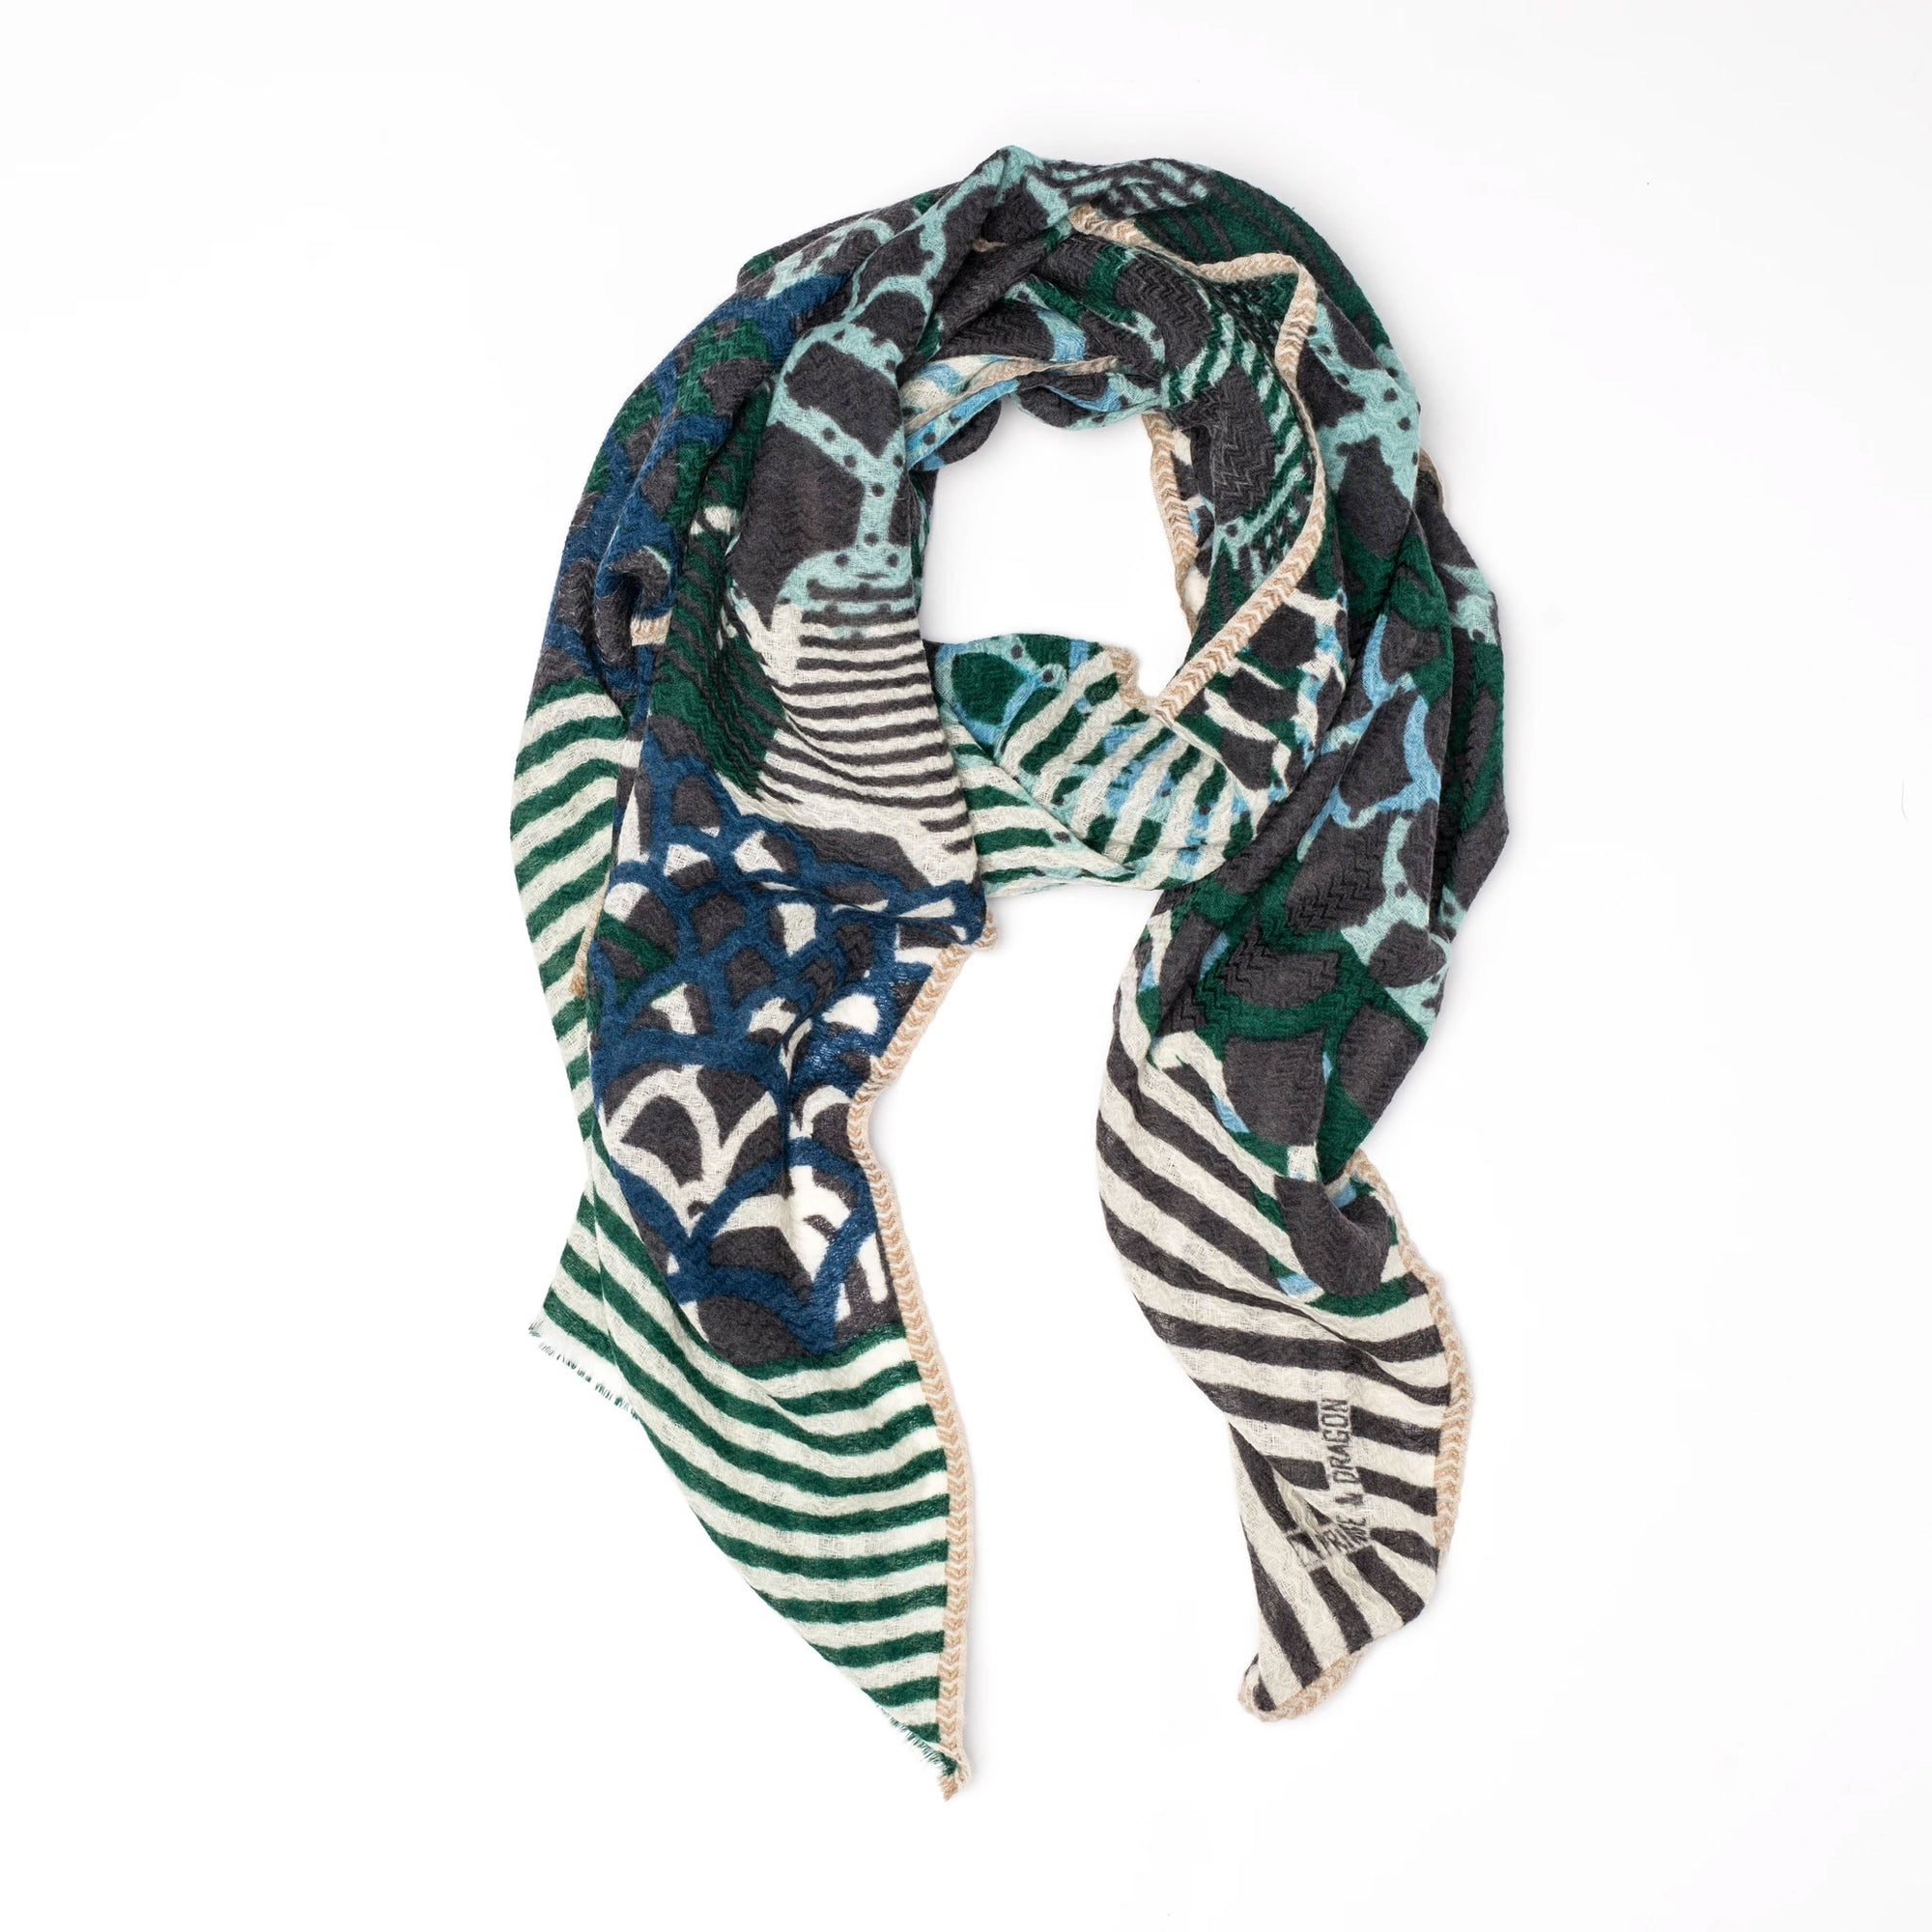 Céleste - 100% Fine Merino Wool Scarf - Forest Green & Grey - Sold by Chic & Basta